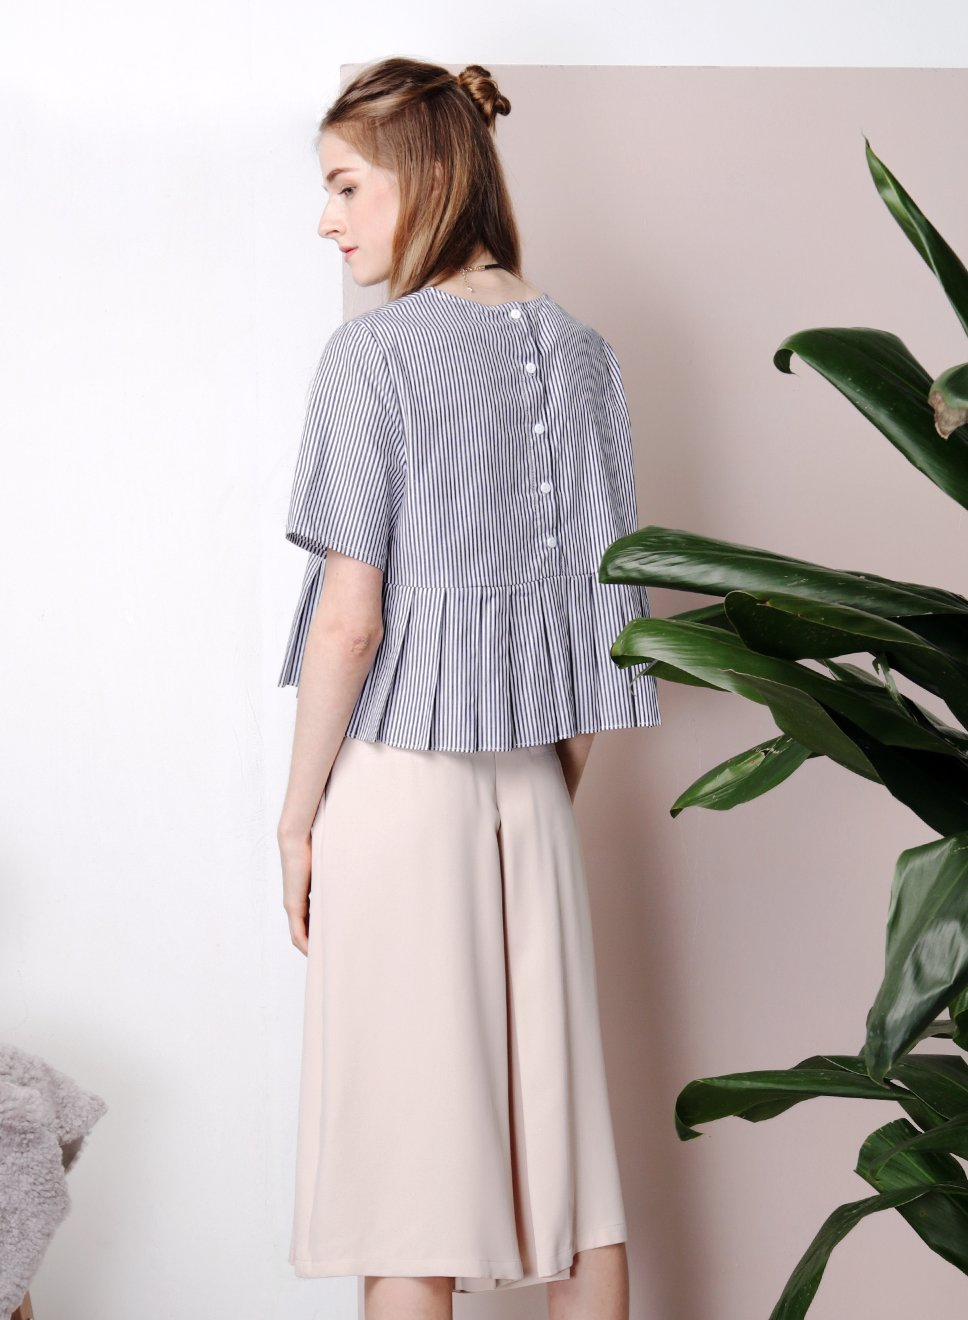 SYMPHONY Pleated Flare Culottes (Sand) at $ 21.50 only sold at And Well Dressed Online Fashion Store Singapore